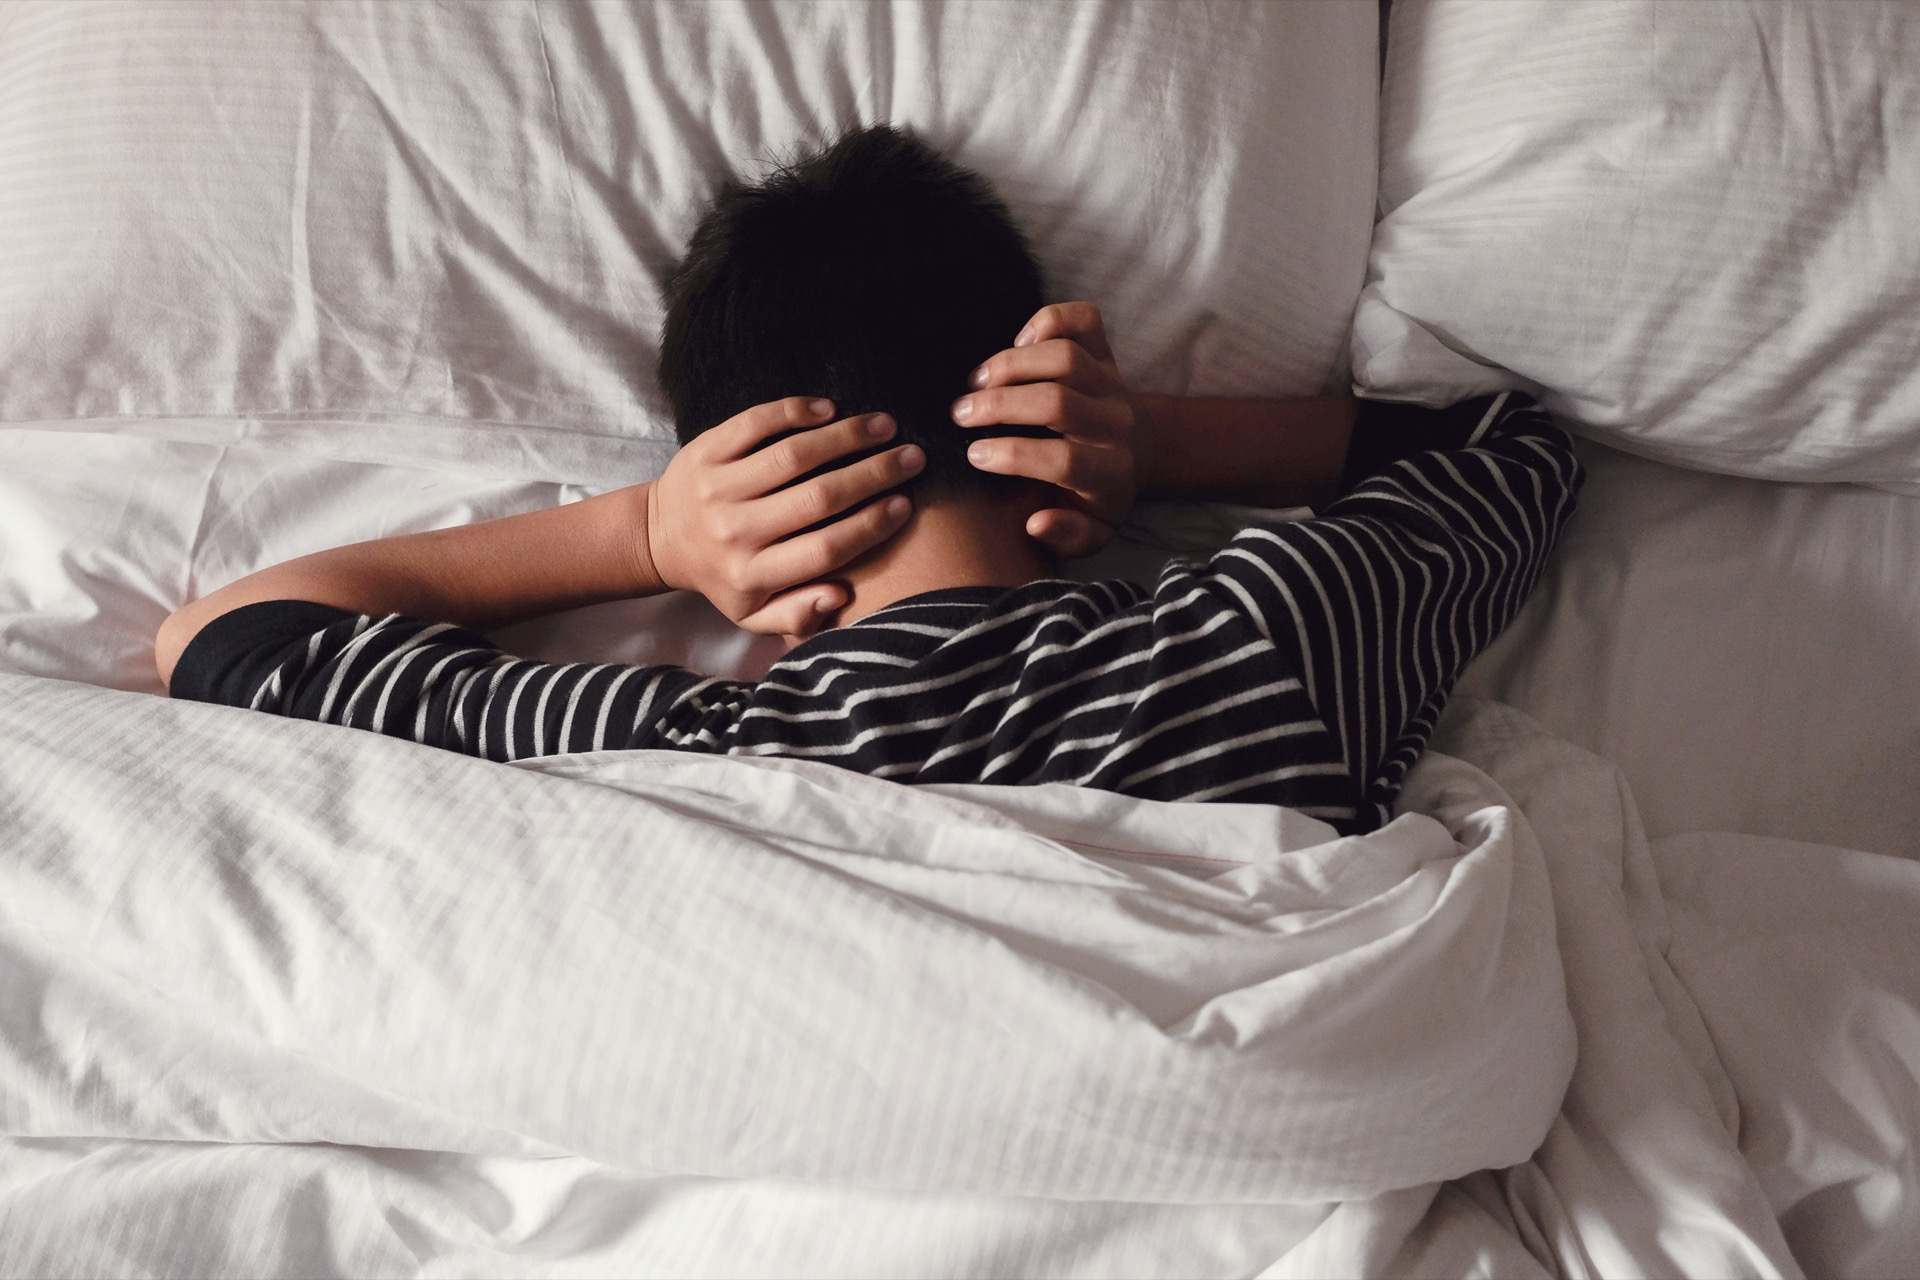 Preteen Tween Boy Covering Ears With His Hands In Bed, Adhd, Sle